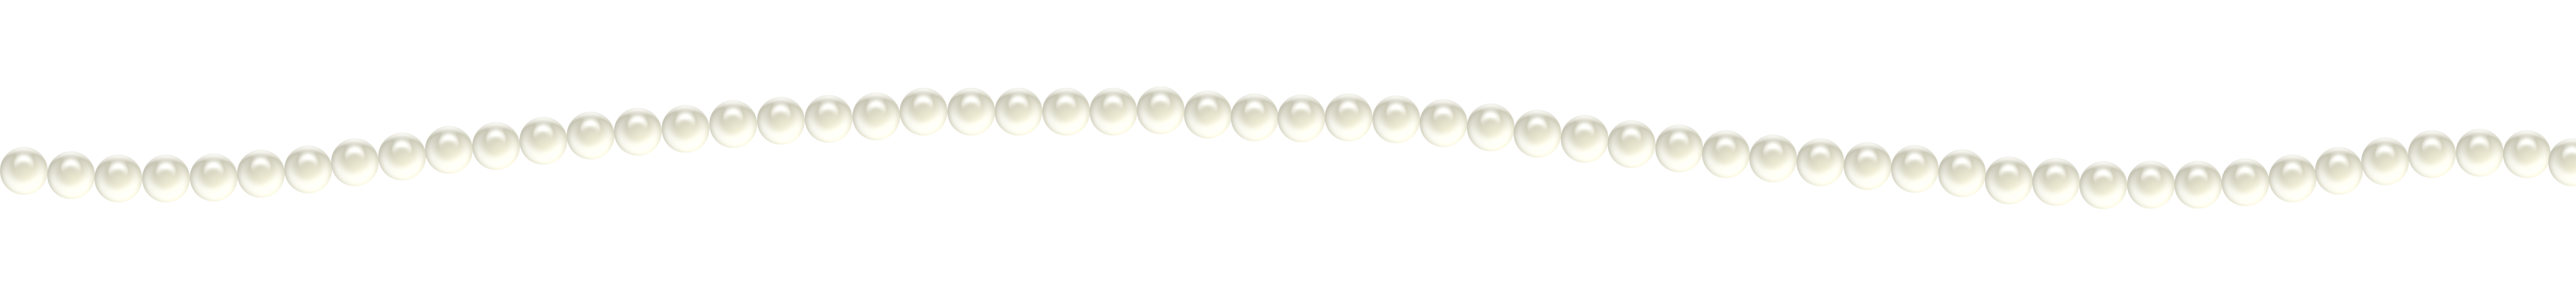 Transparent pearls border. Pearl decoration png clipart